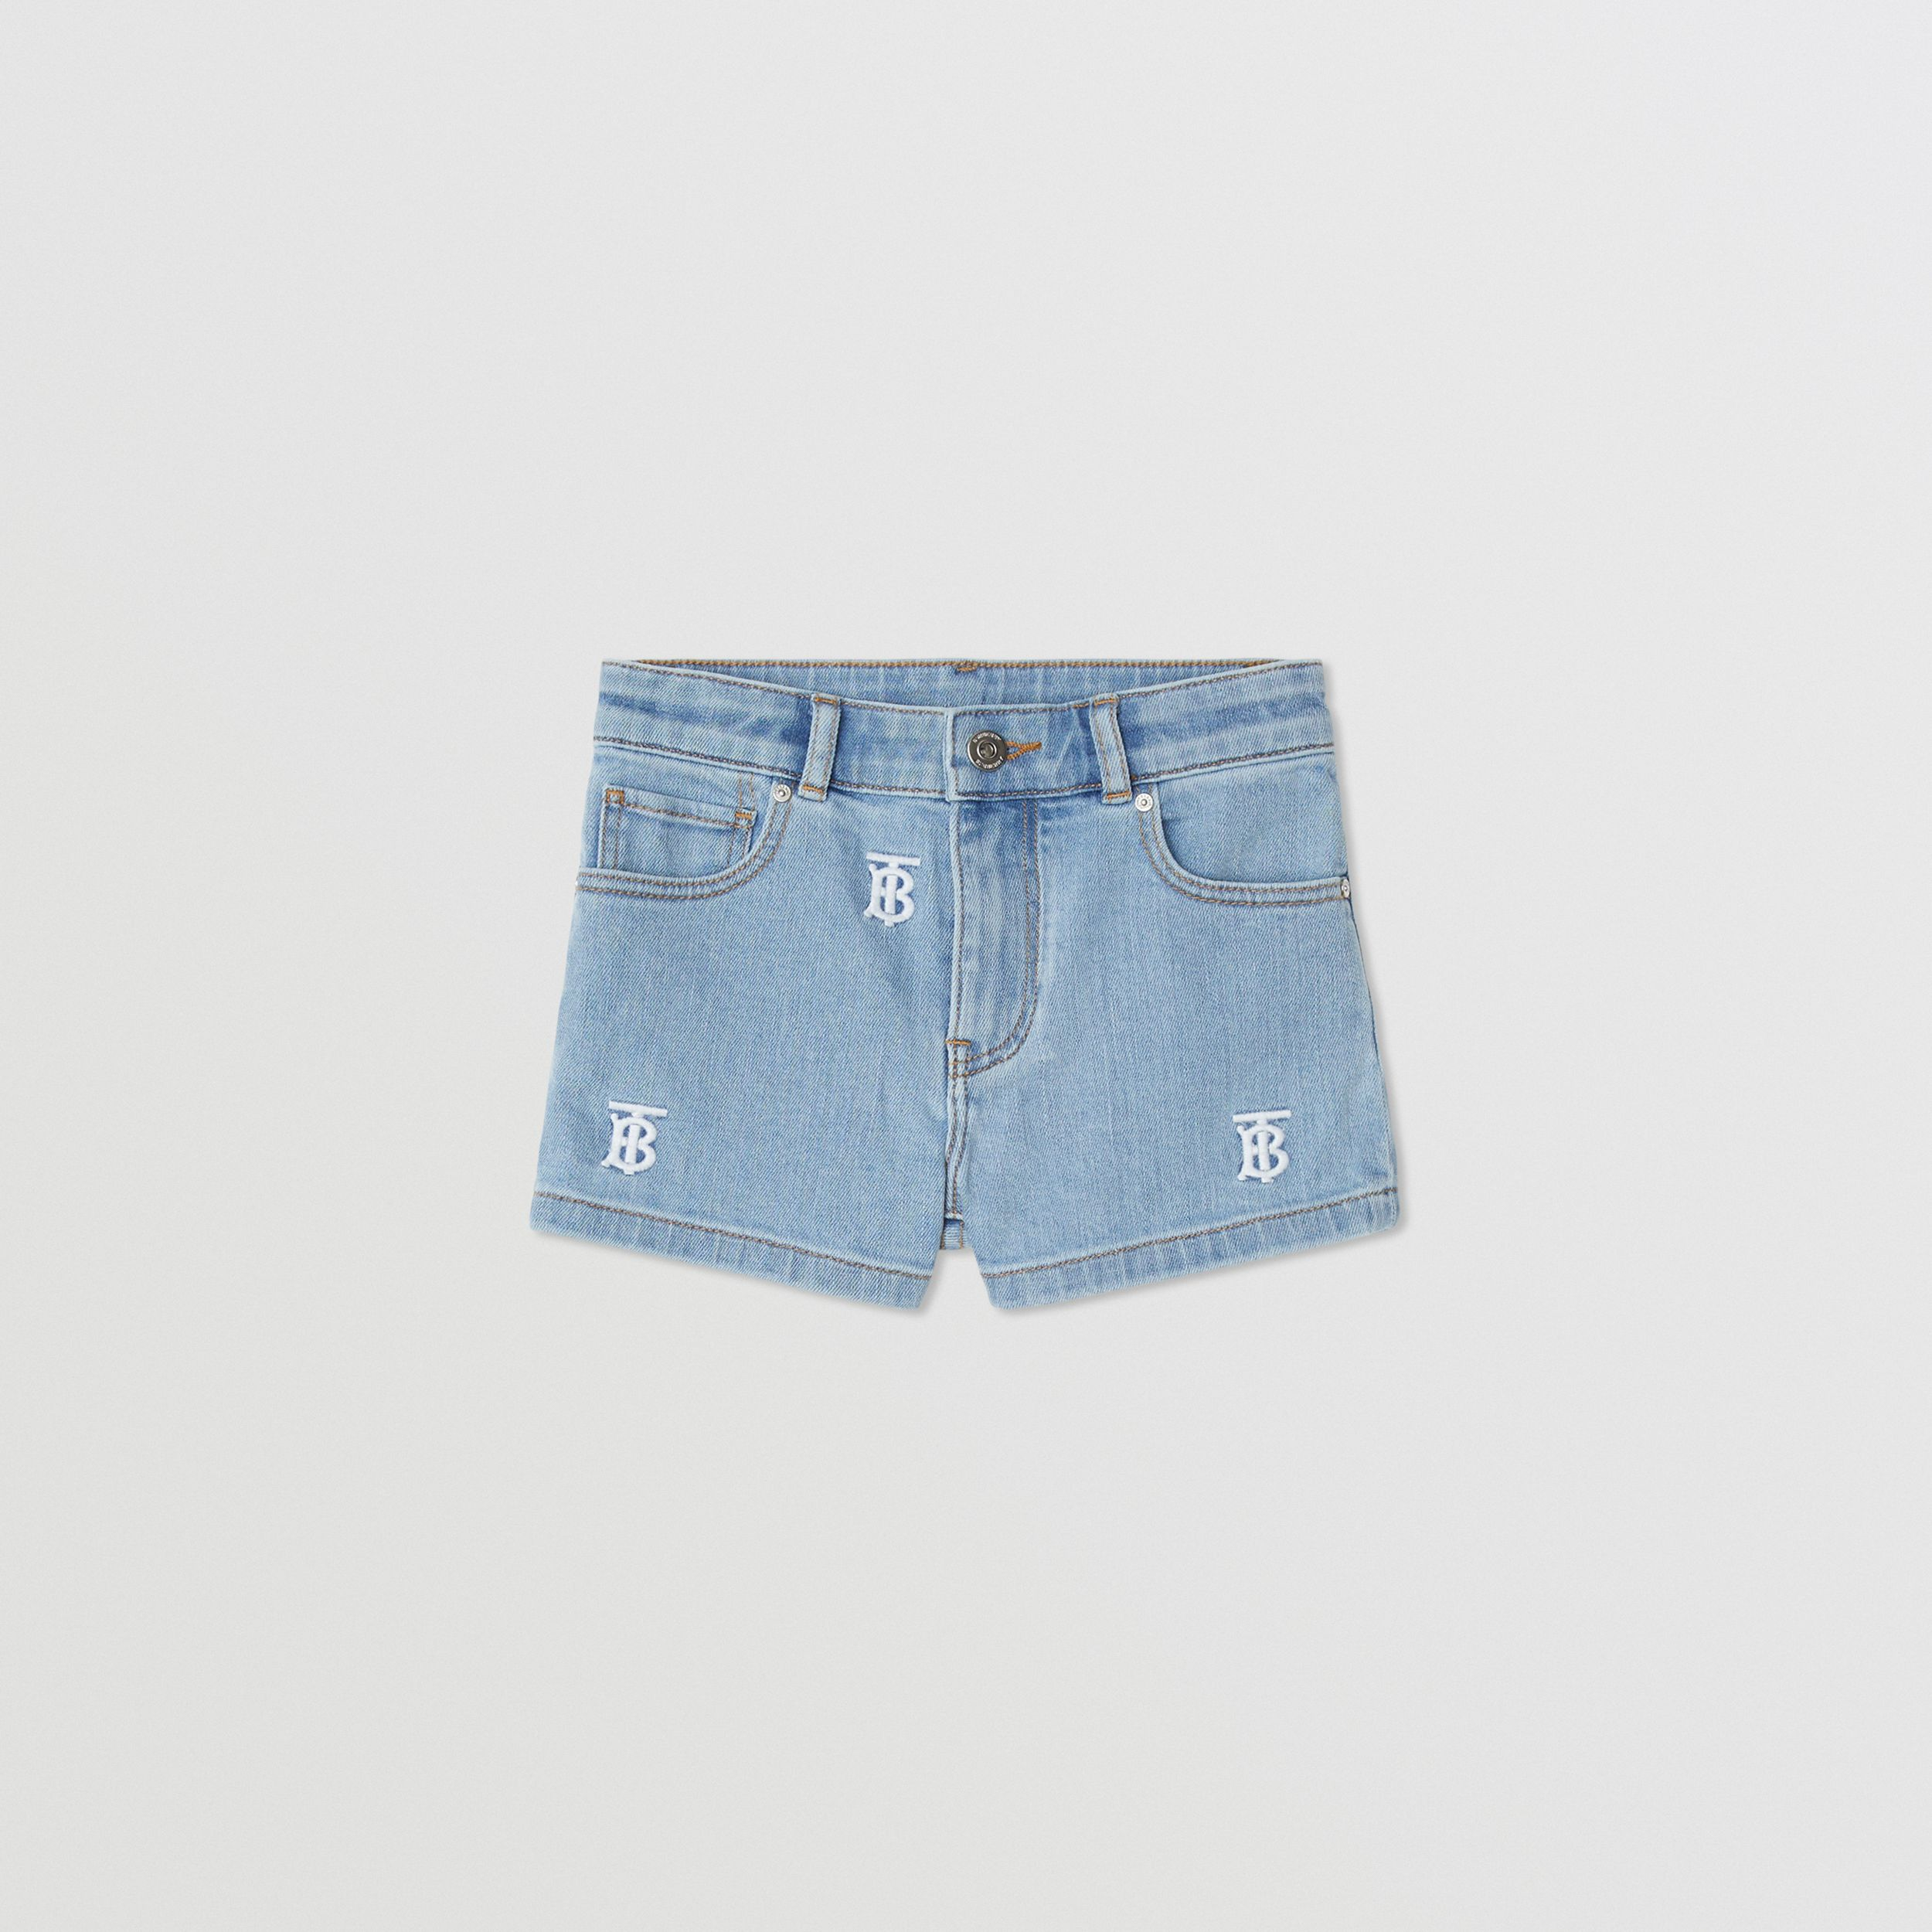 Monogram Motif Stretch Denim Shorts in Pale Blue | Burberry Canada - 1